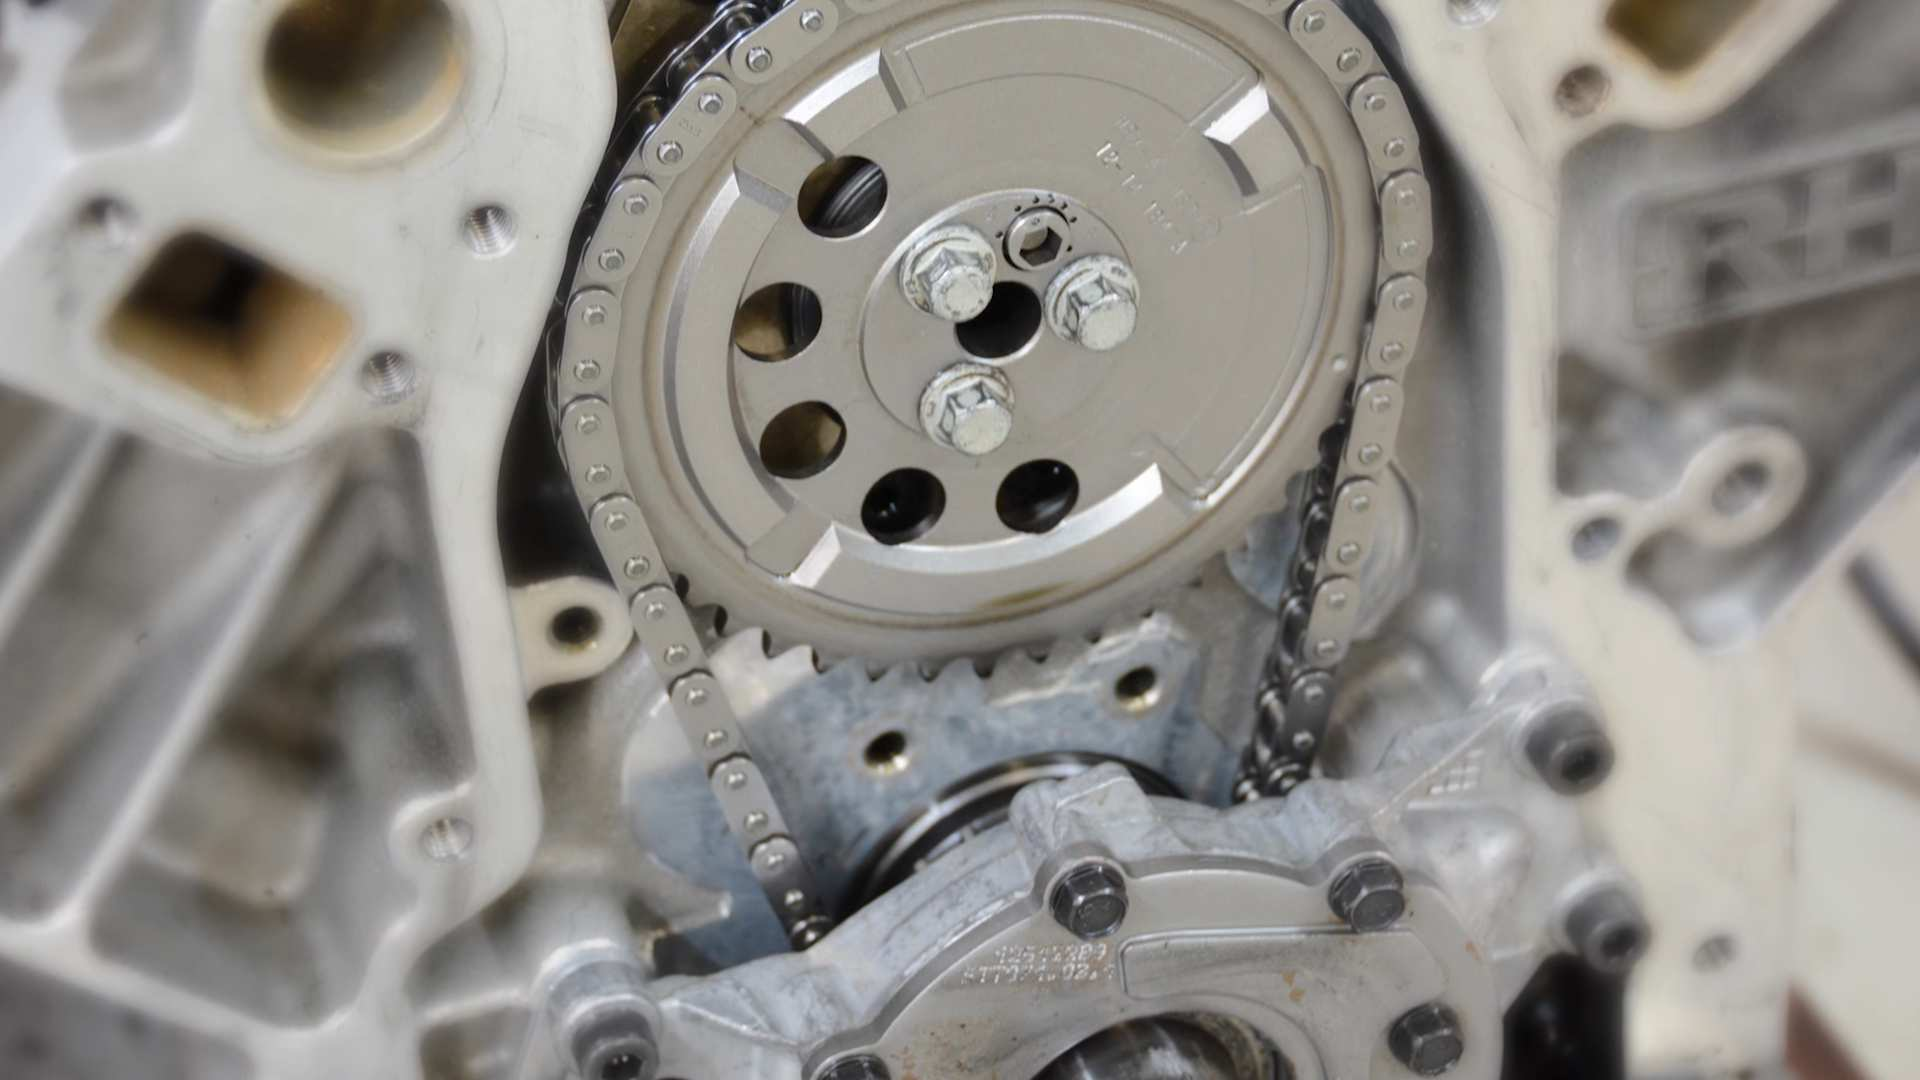 Tech: Informative Overview Of Timing Chain Design And